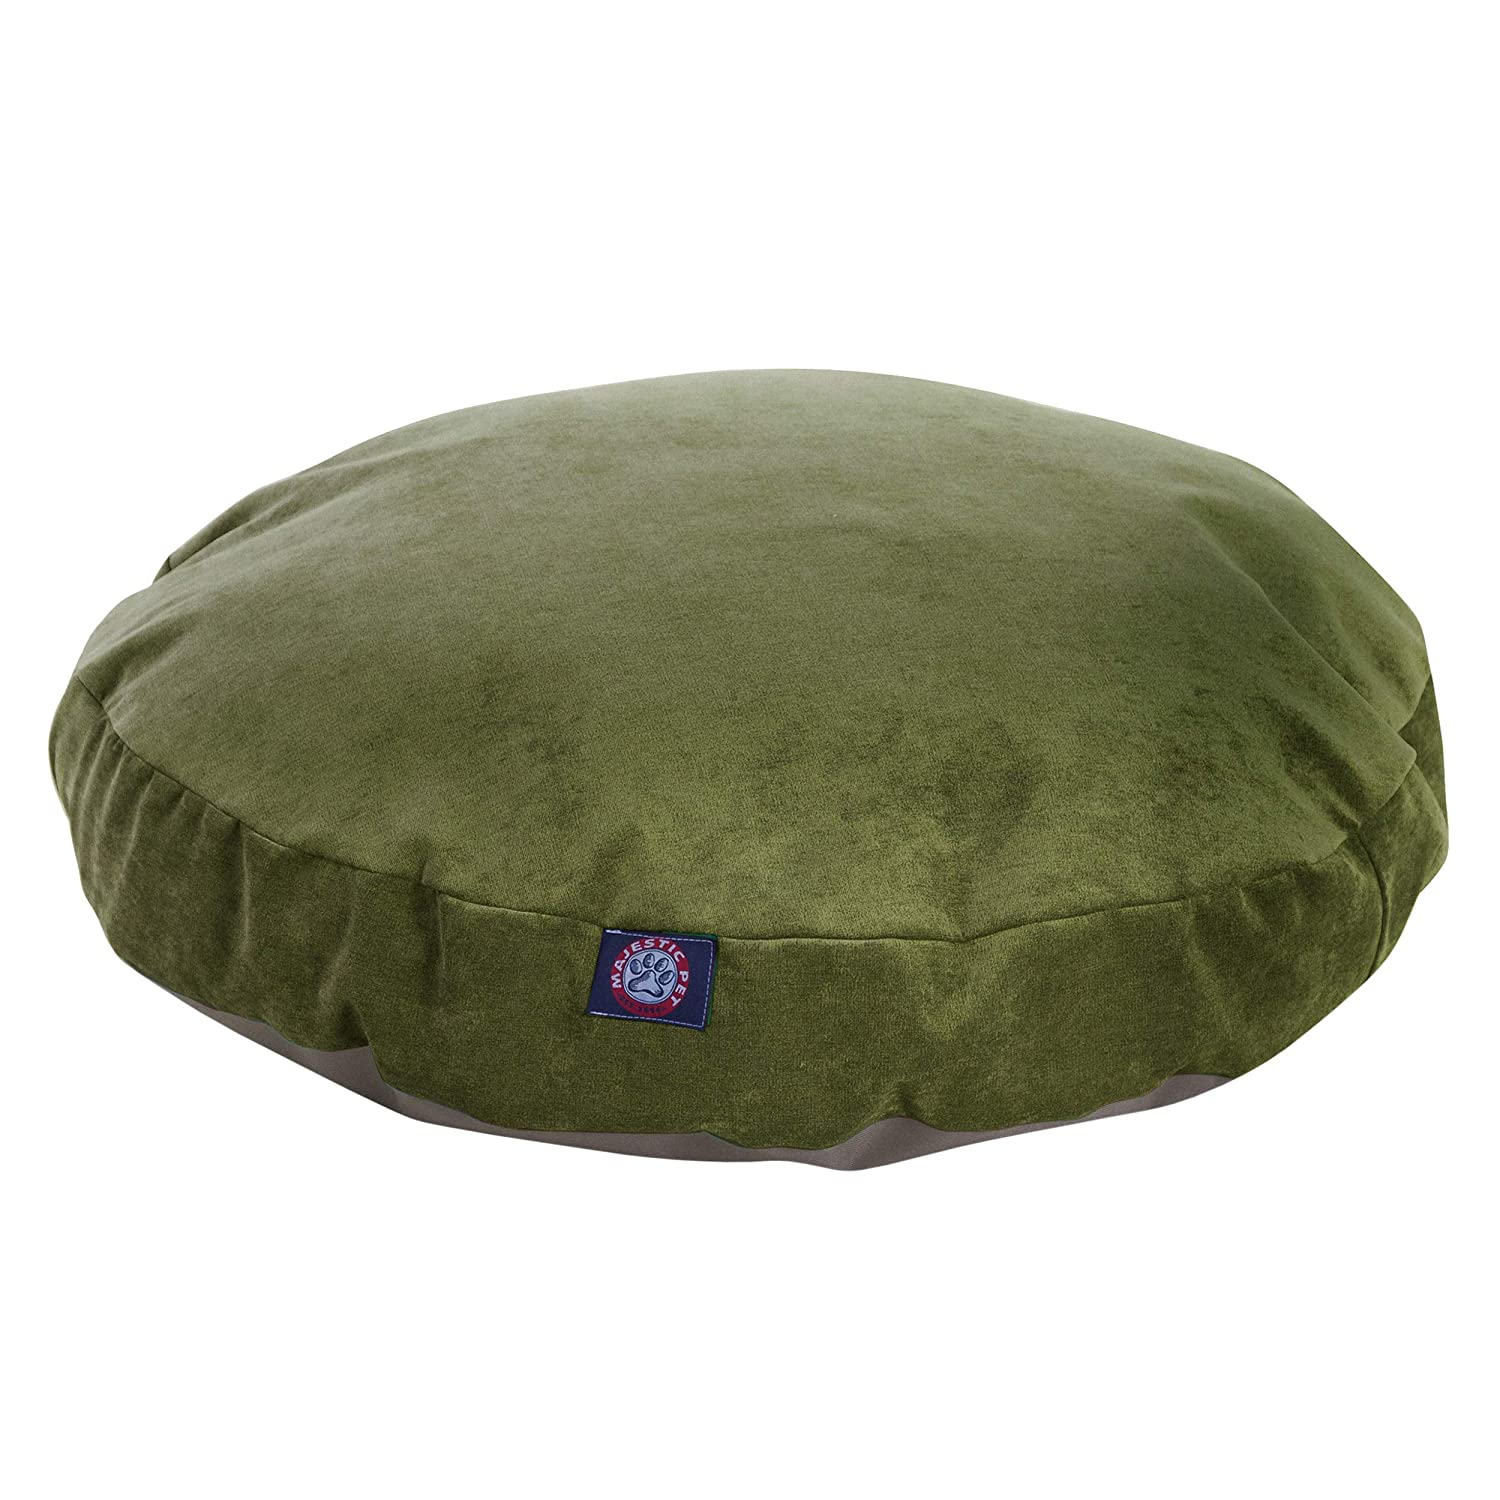 Fern Villa Collection Small Round Pet Dog Bed